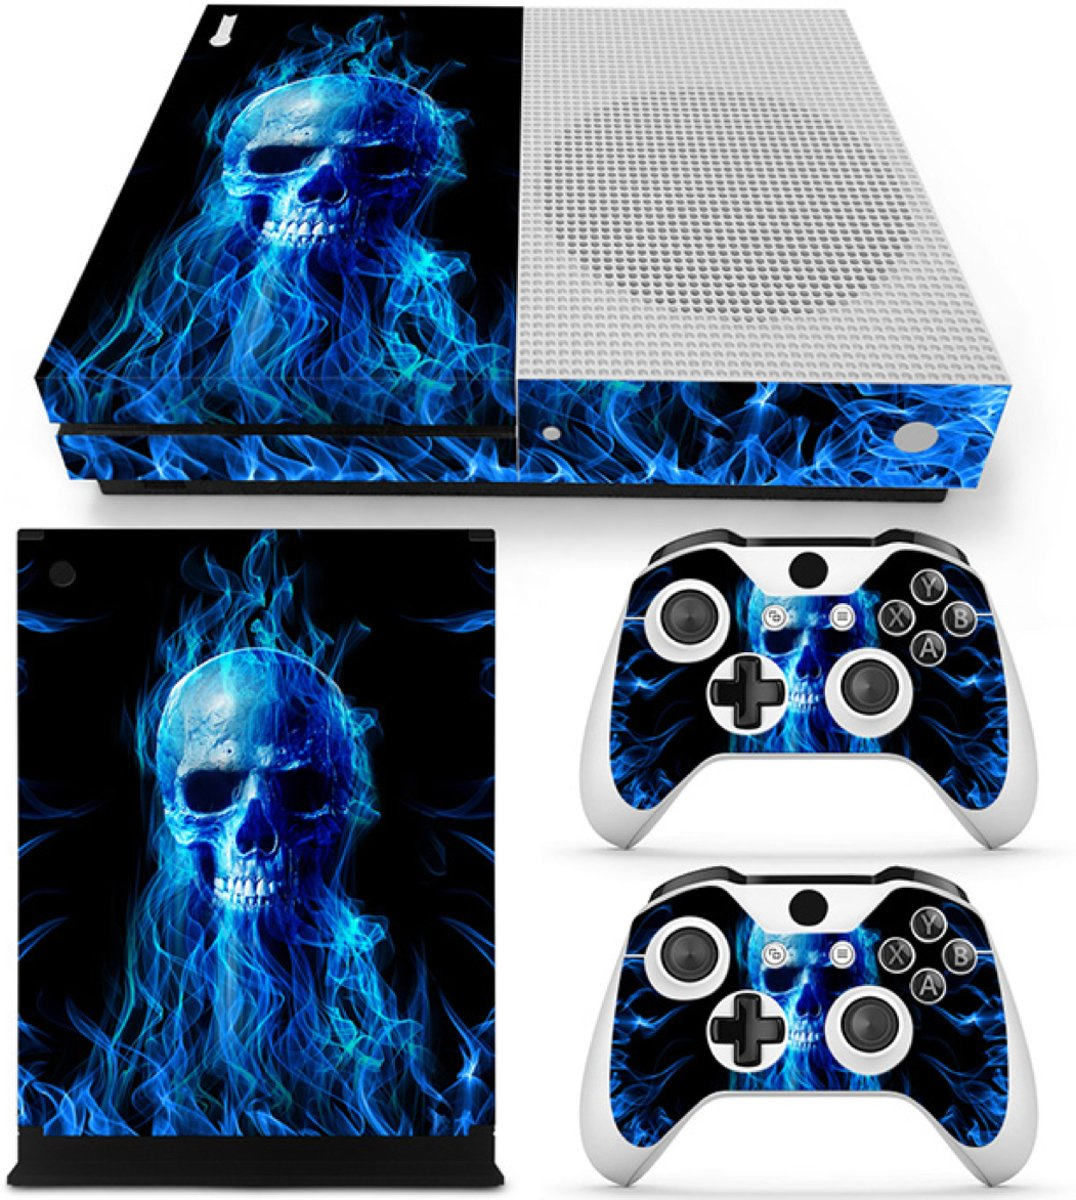 Fire Skull - Xbox One S Console Skins Stickers